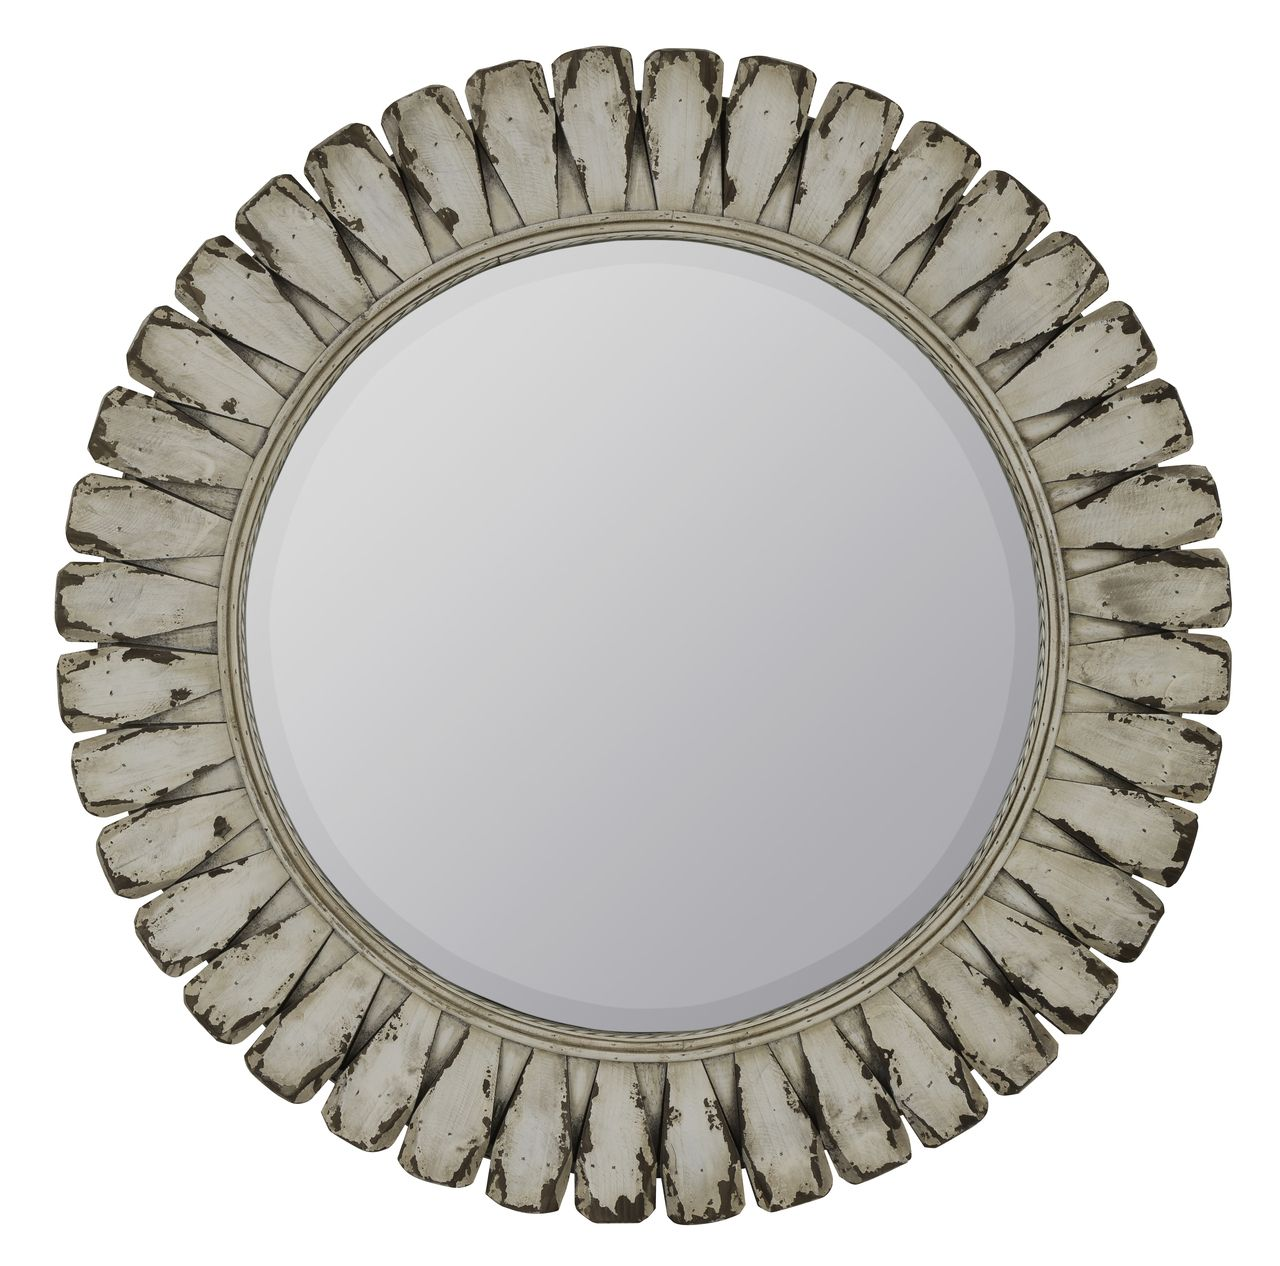 Finehomelamps tagus distressed white wall mirror by cooper finehomelamps tagus distressed white wall mirror by cooper classics 34 amipublicfo Choice Image